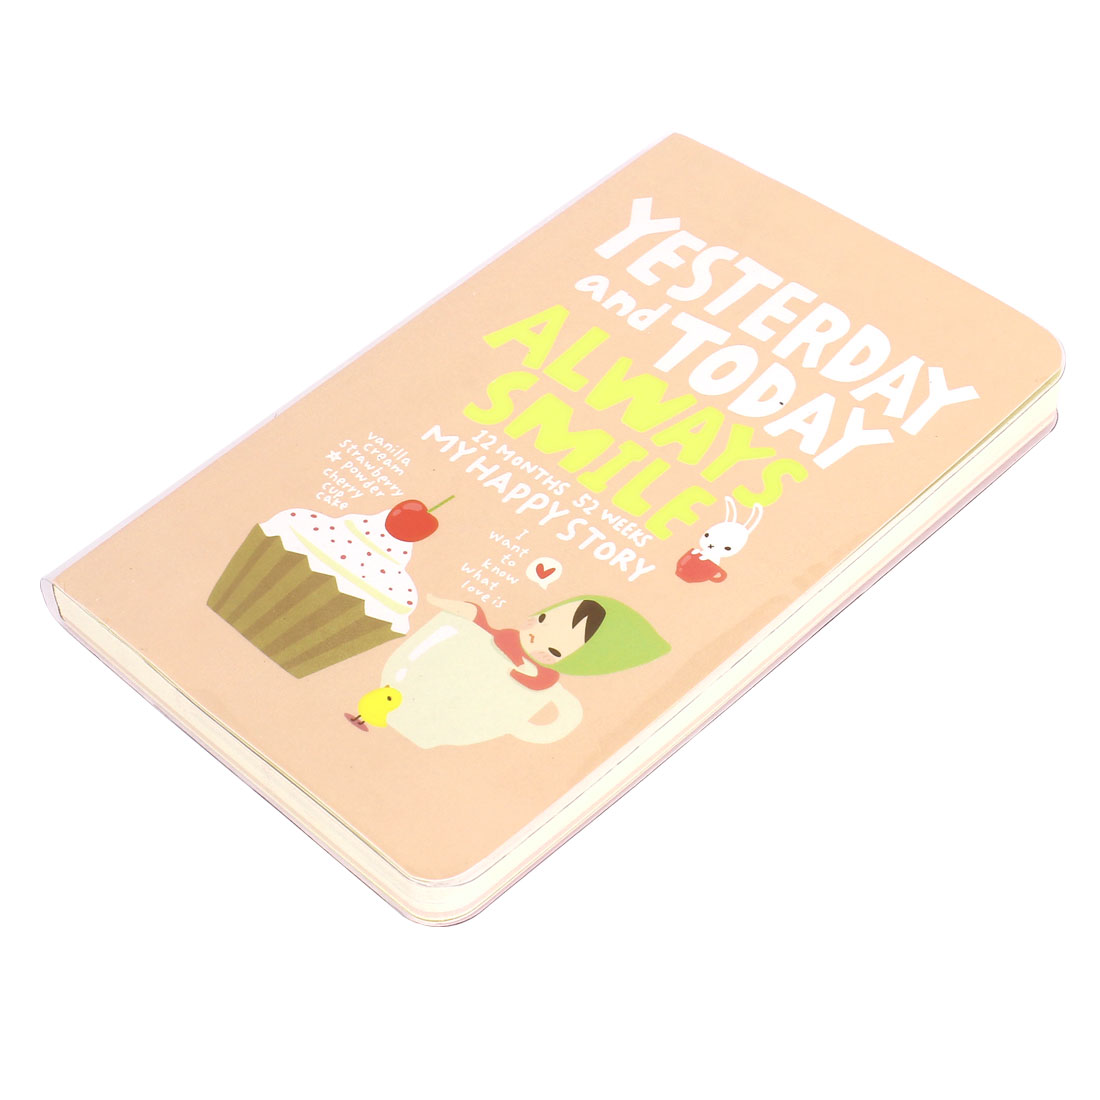 Cartoon Pattern Beige Paper Jotter Book Notepad Notebook 192 Sheet